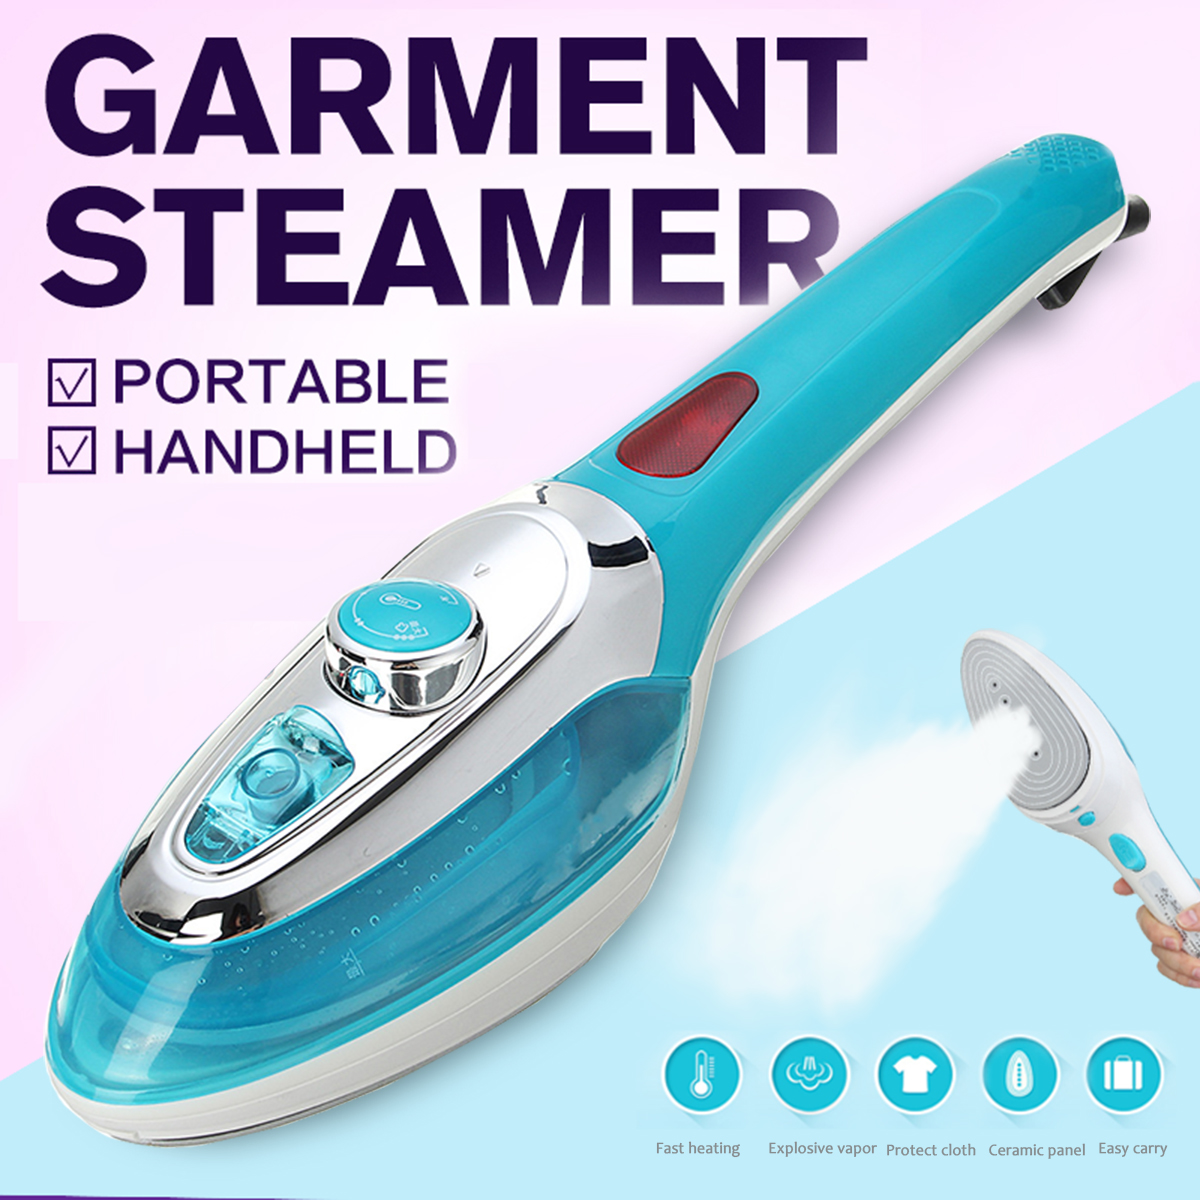 220V 1000W Portable Handheld Garment Steamers Clothes Mini Electric Iron Machine Steam Iron